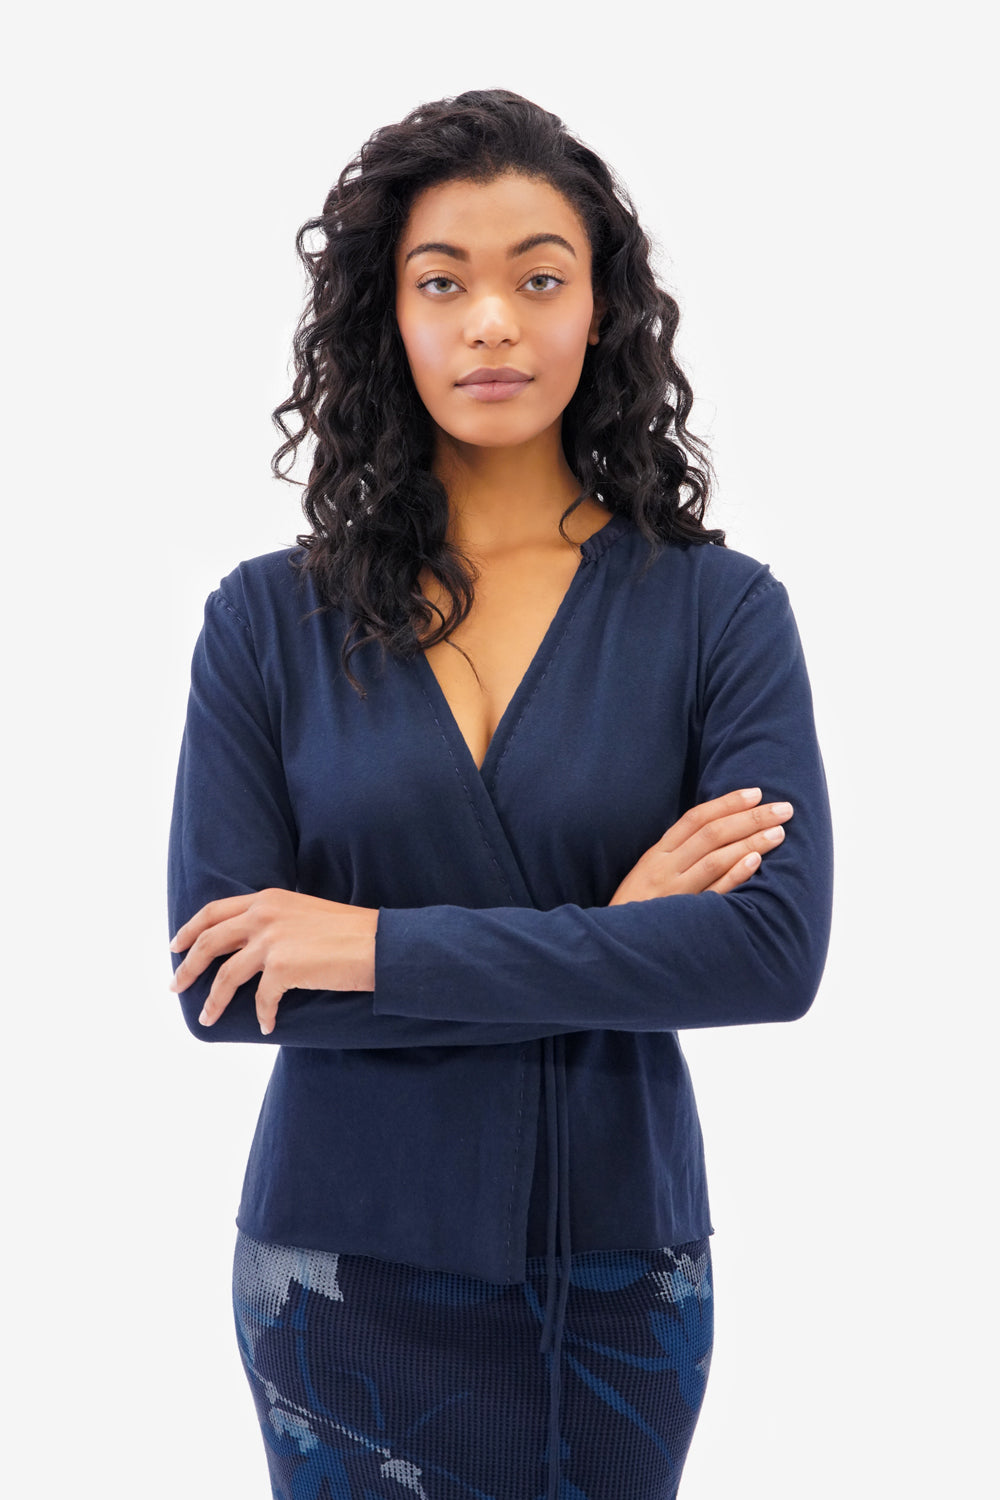 Alabama Chanin The Wrap Top Handsewn in Navy